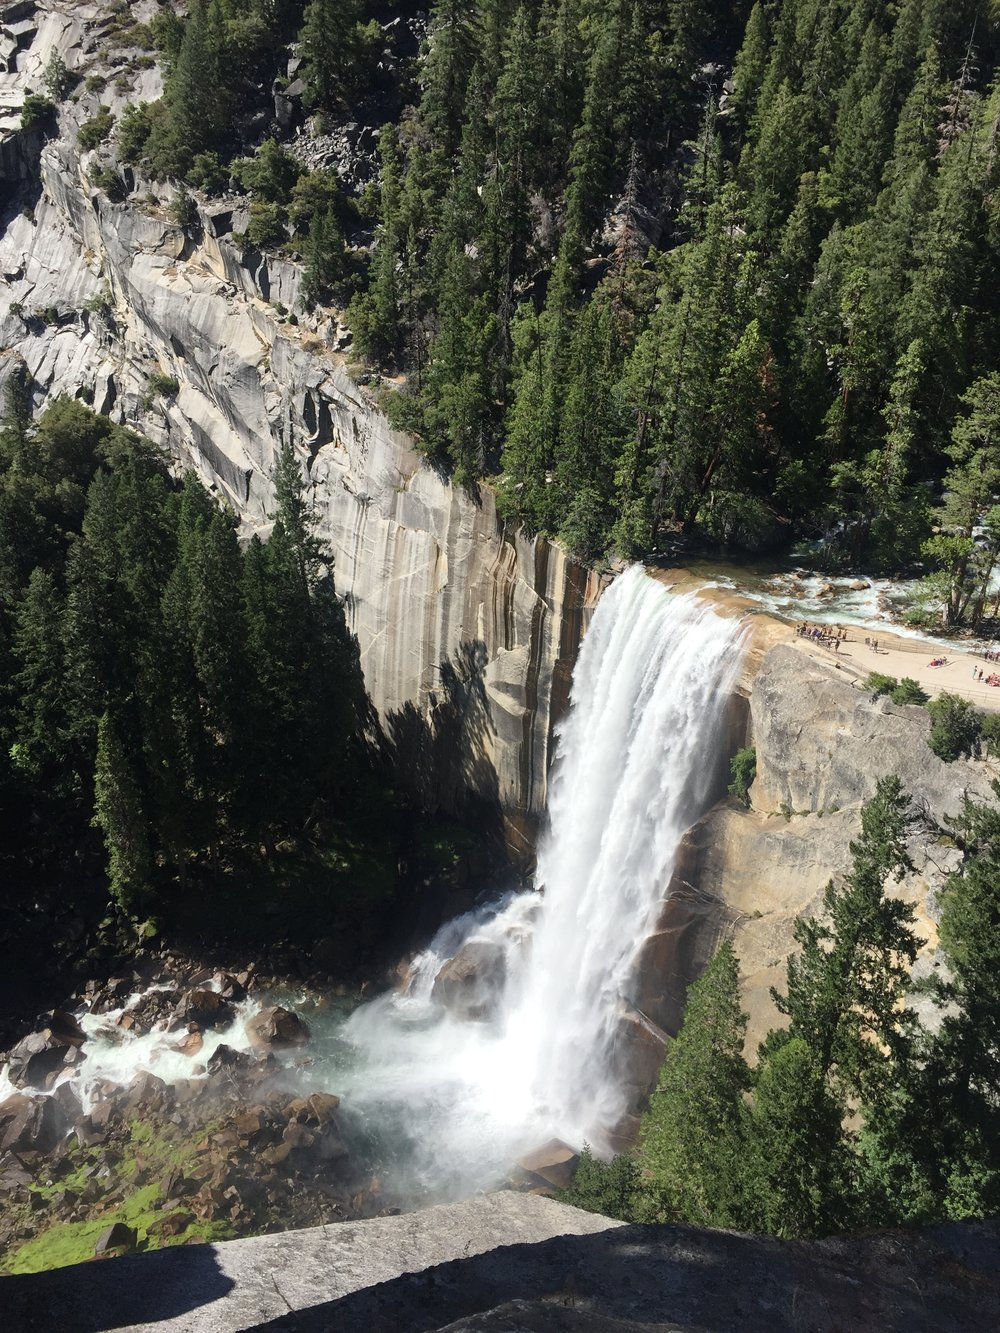 Vernal Falls, Yosemite National Park, California, 2016.